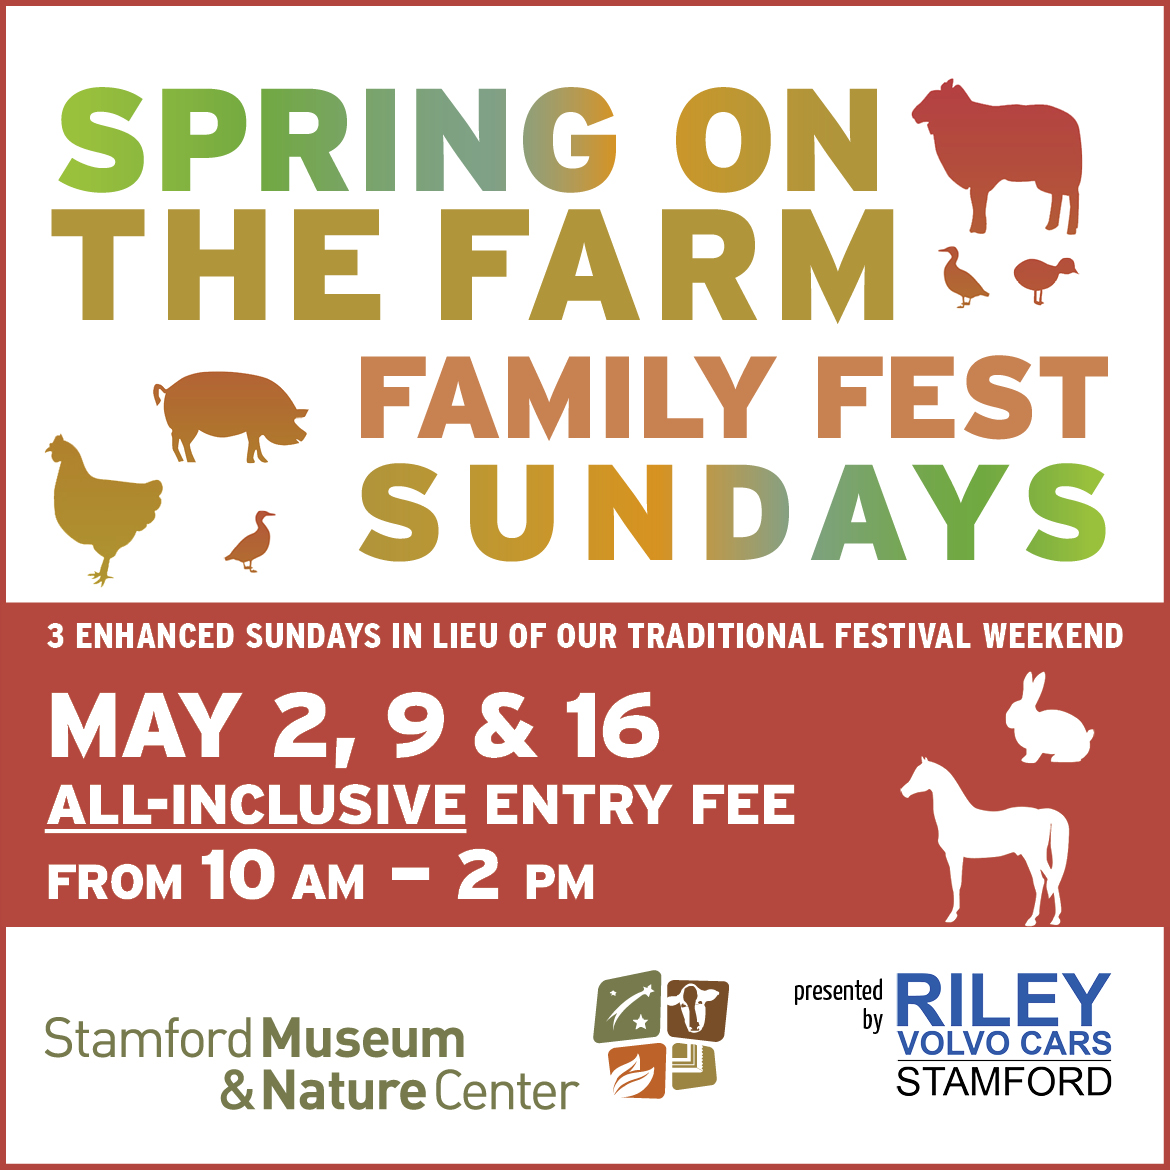 Spring on the Farm Family Fest Sundays